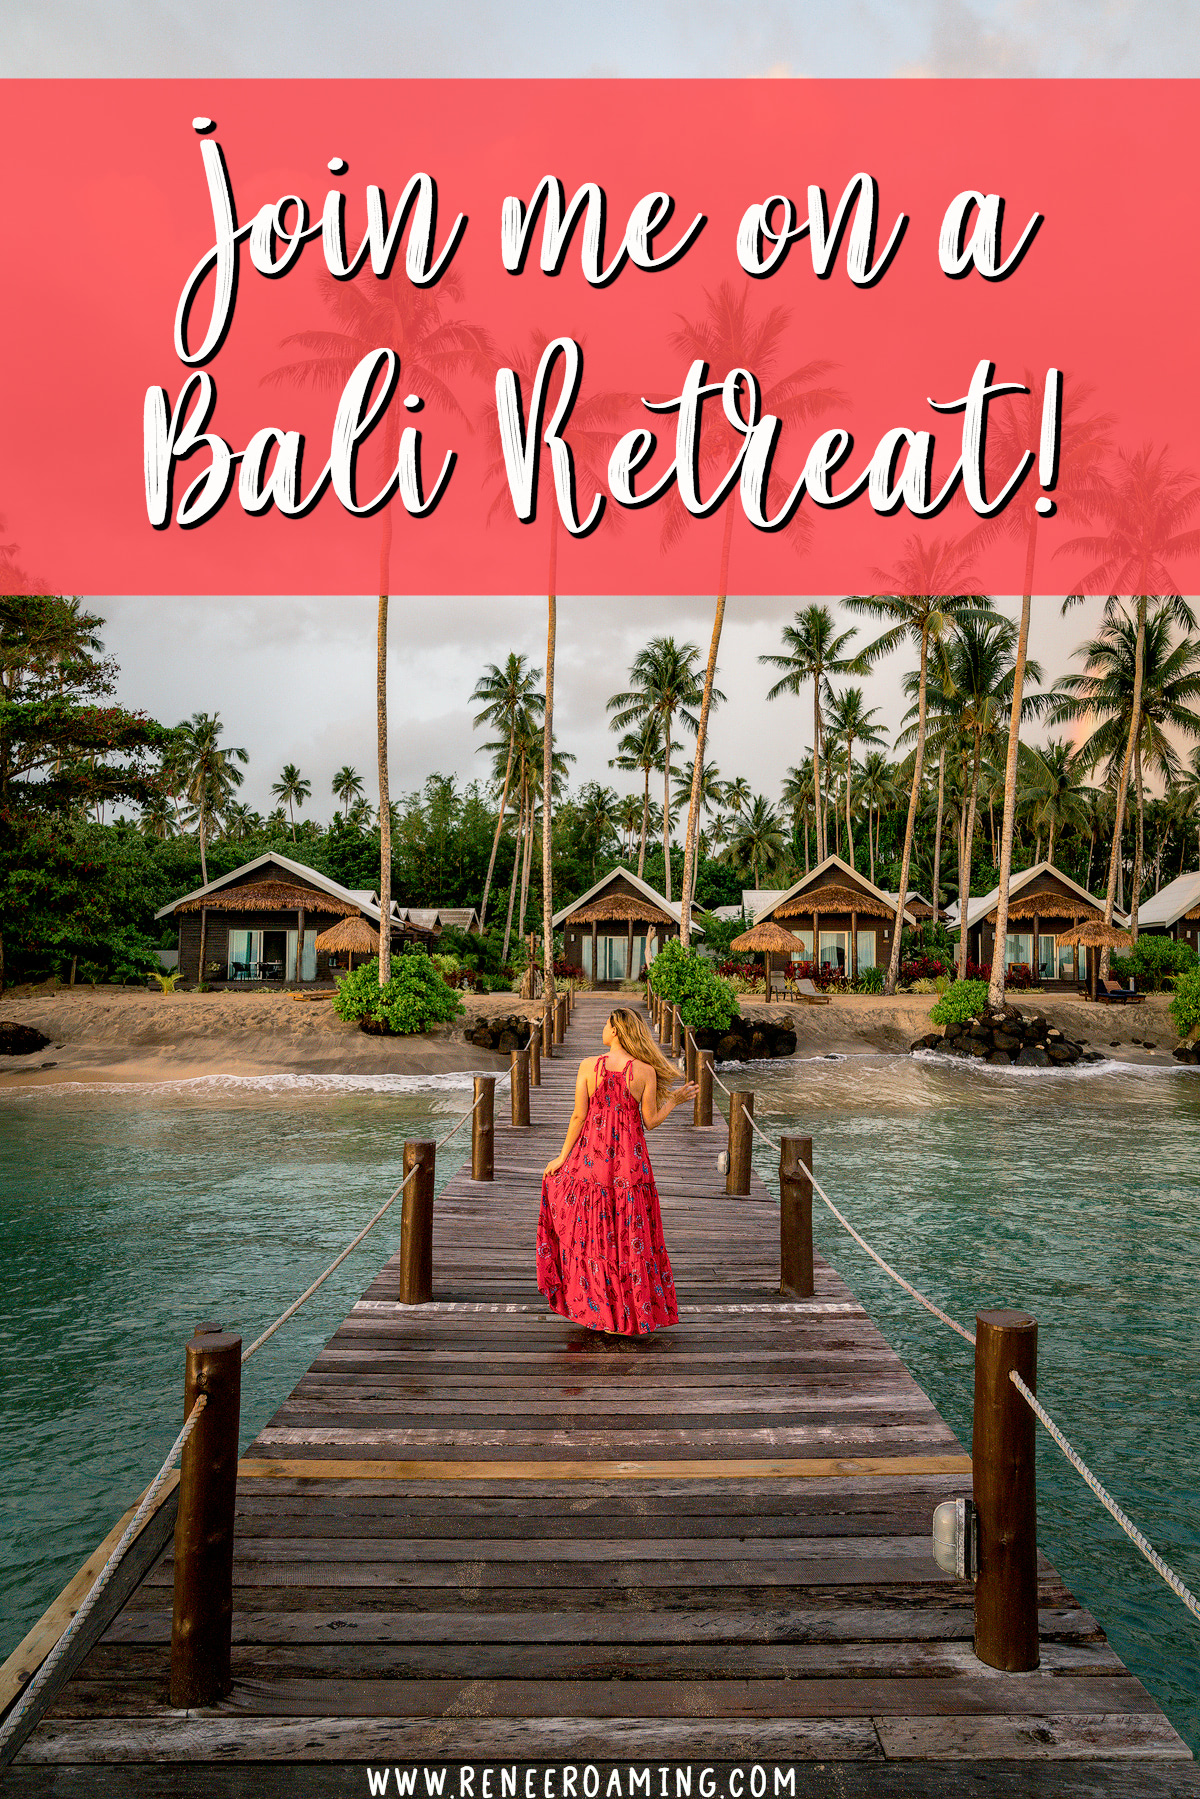 Join-Me-On-A-Bali-Retreat-Renee-Roaming